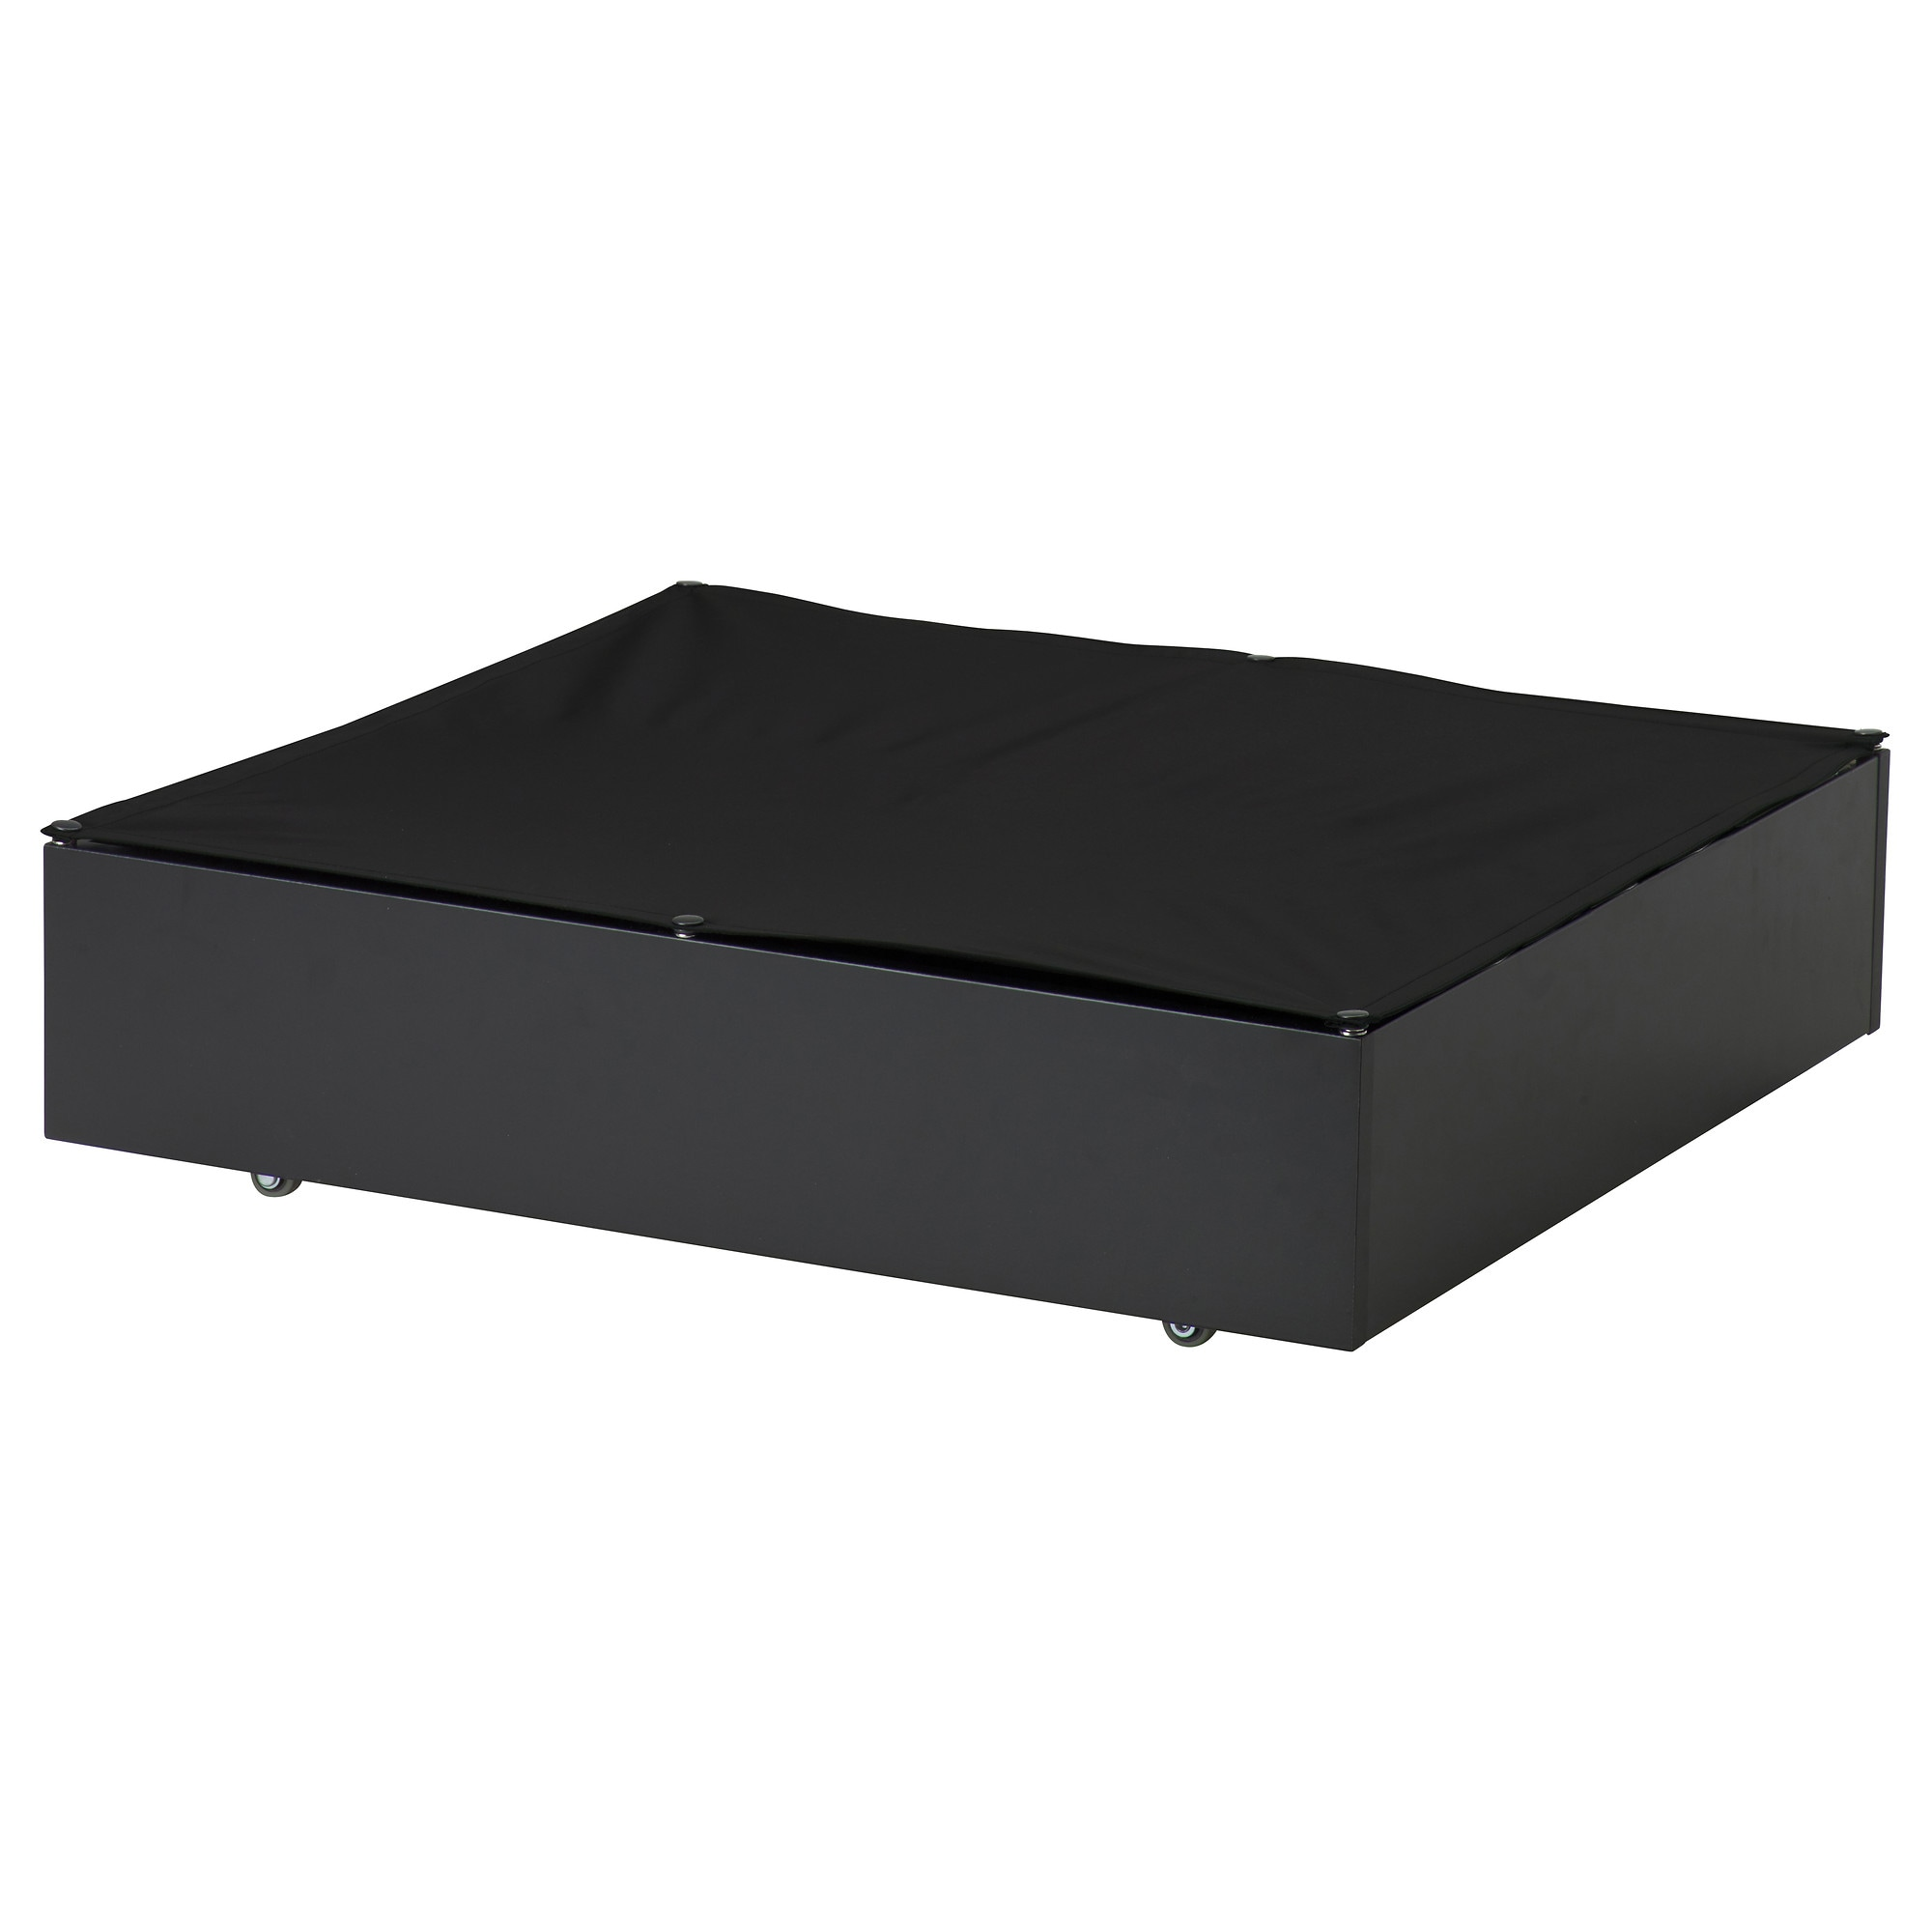 vard underbed storage box black height of drawer inside 5 1